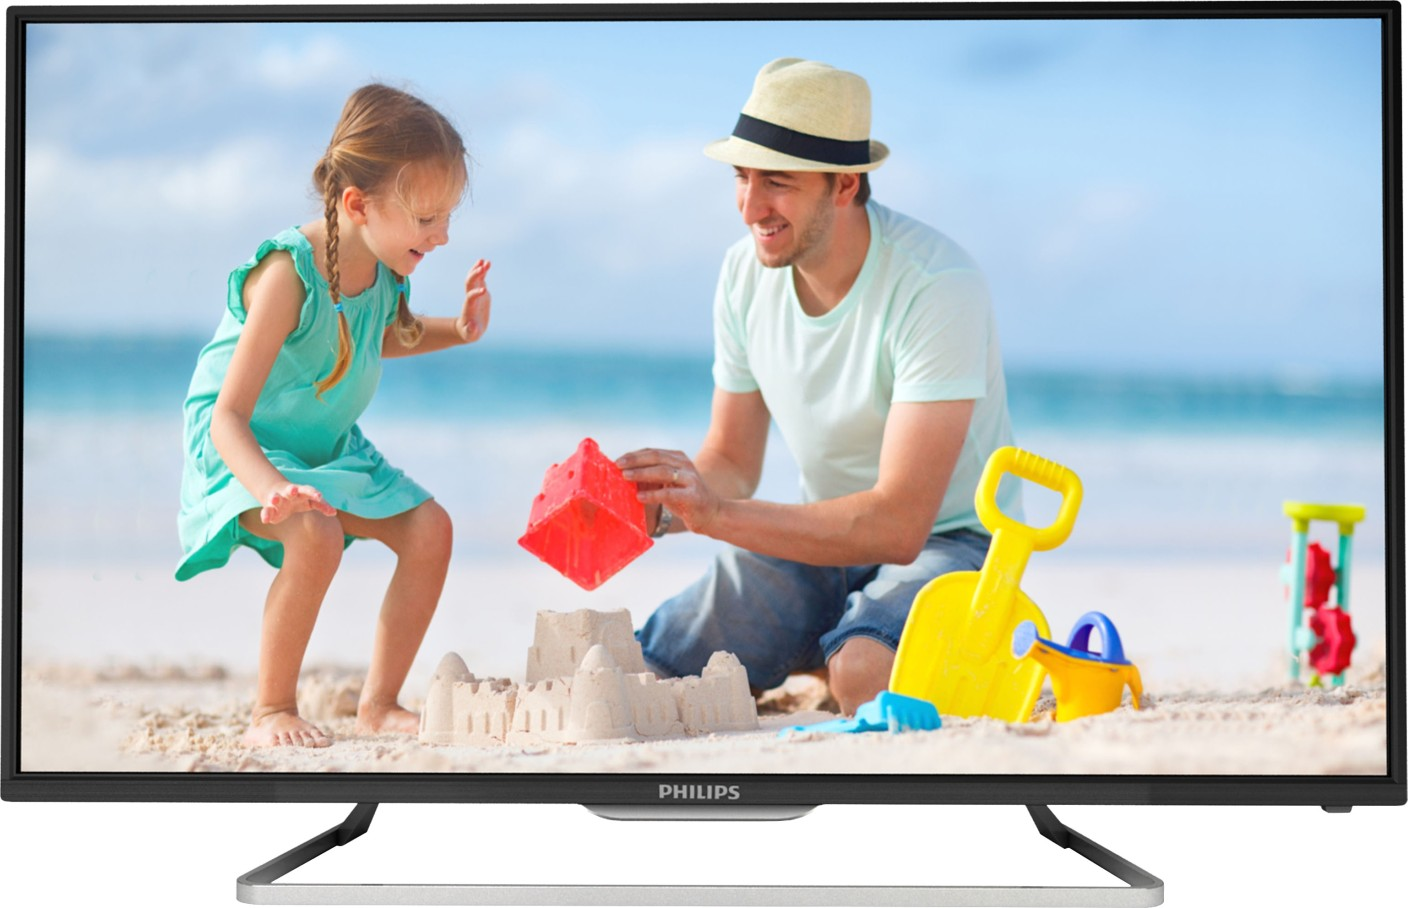 philips 107 cm 42 inch full hd led tv online at best prices in india. Black Bedroom Furniture Sets. Home Design Ideas